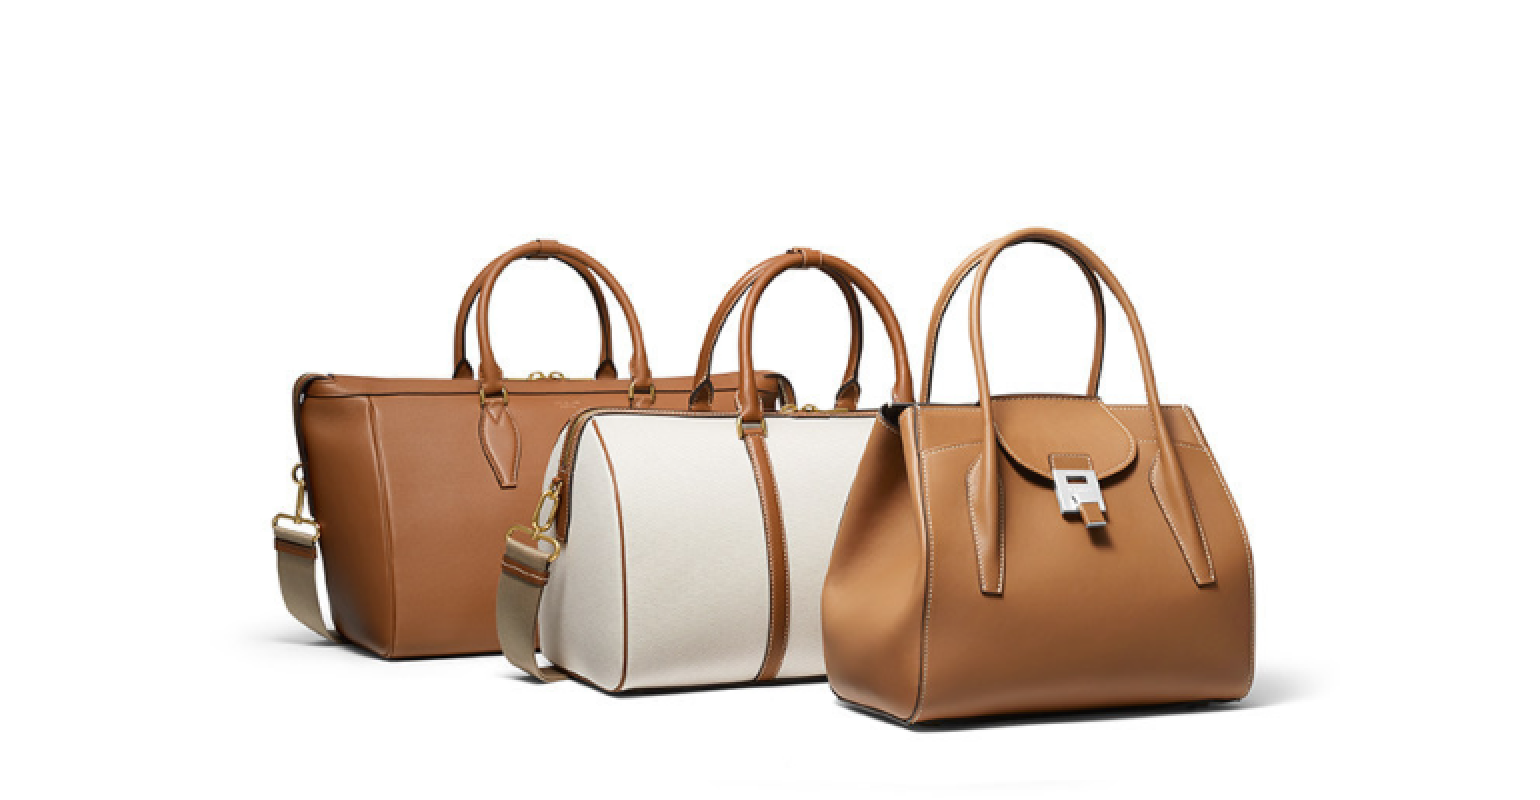 Michael Kors unveils Capsule Collection with 007 Franchise